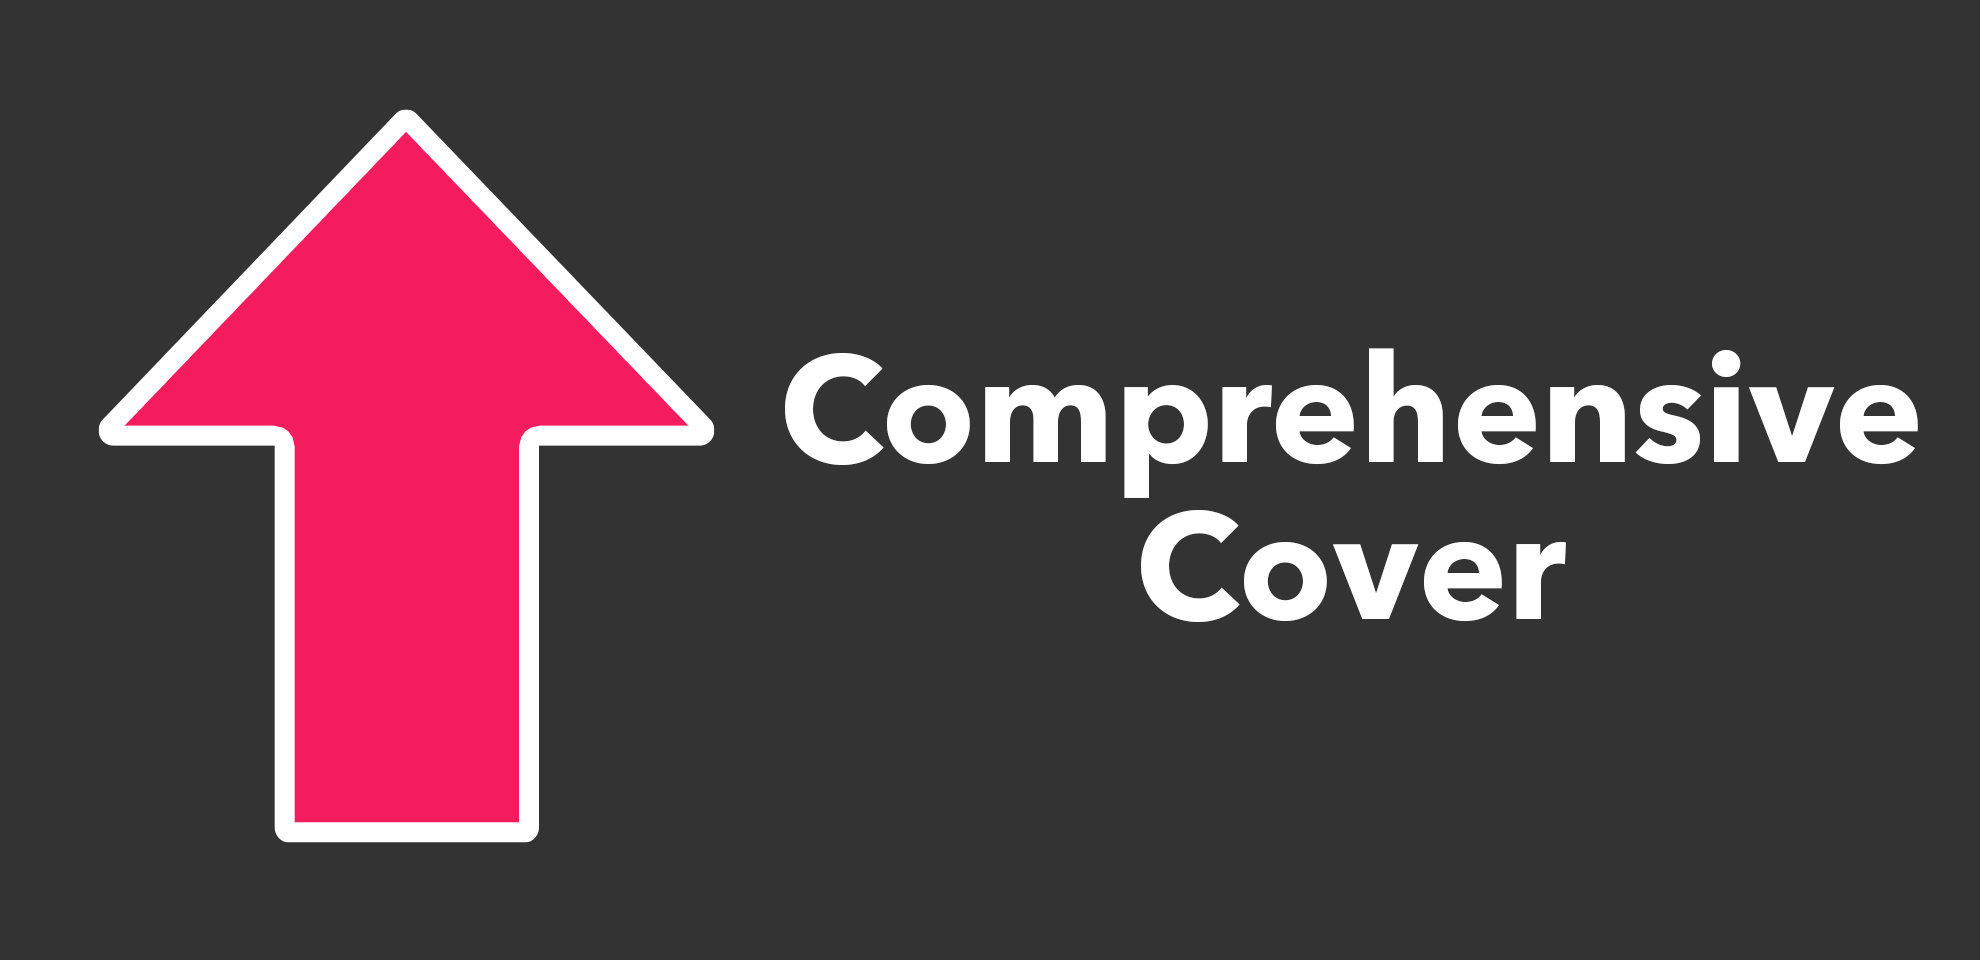 Comprehensive income protection cover